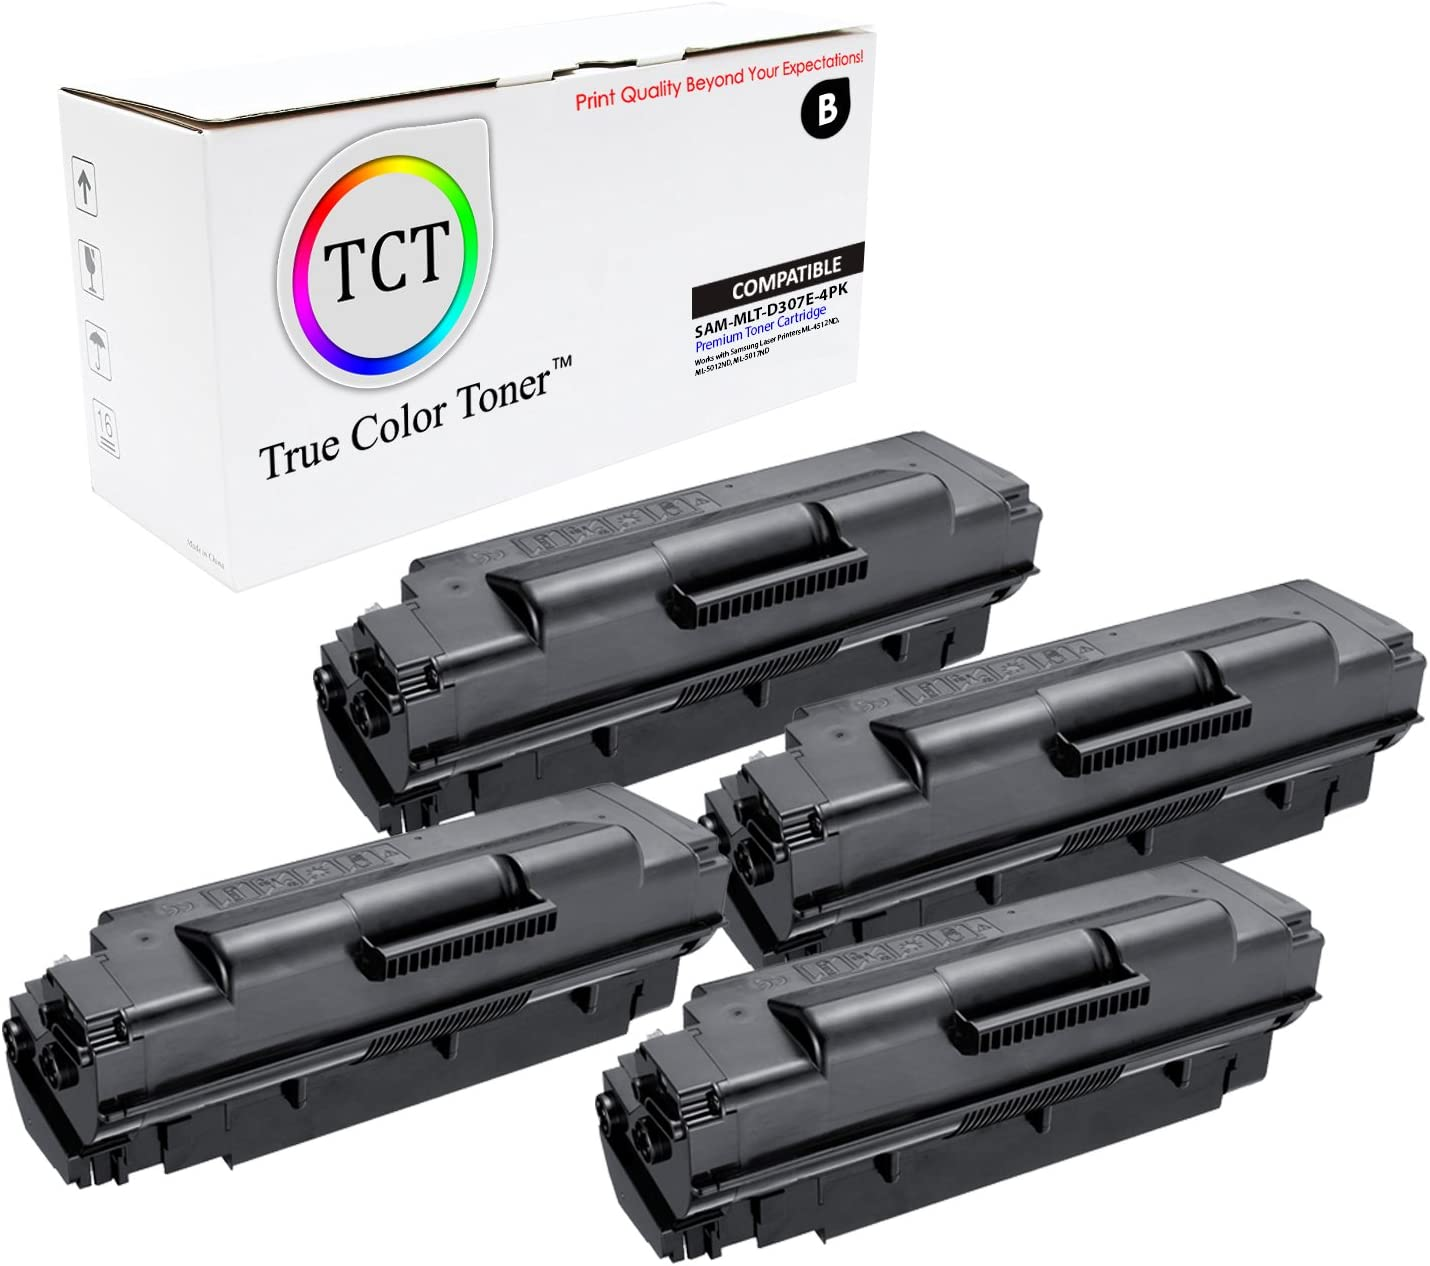 4 Pack TCT Premium Compatible Toner Cartridge Replacement for Samsung MLT-D307E Black Extra High Yield Works with Samsung ML-5010ND Printers 20,000 Pages